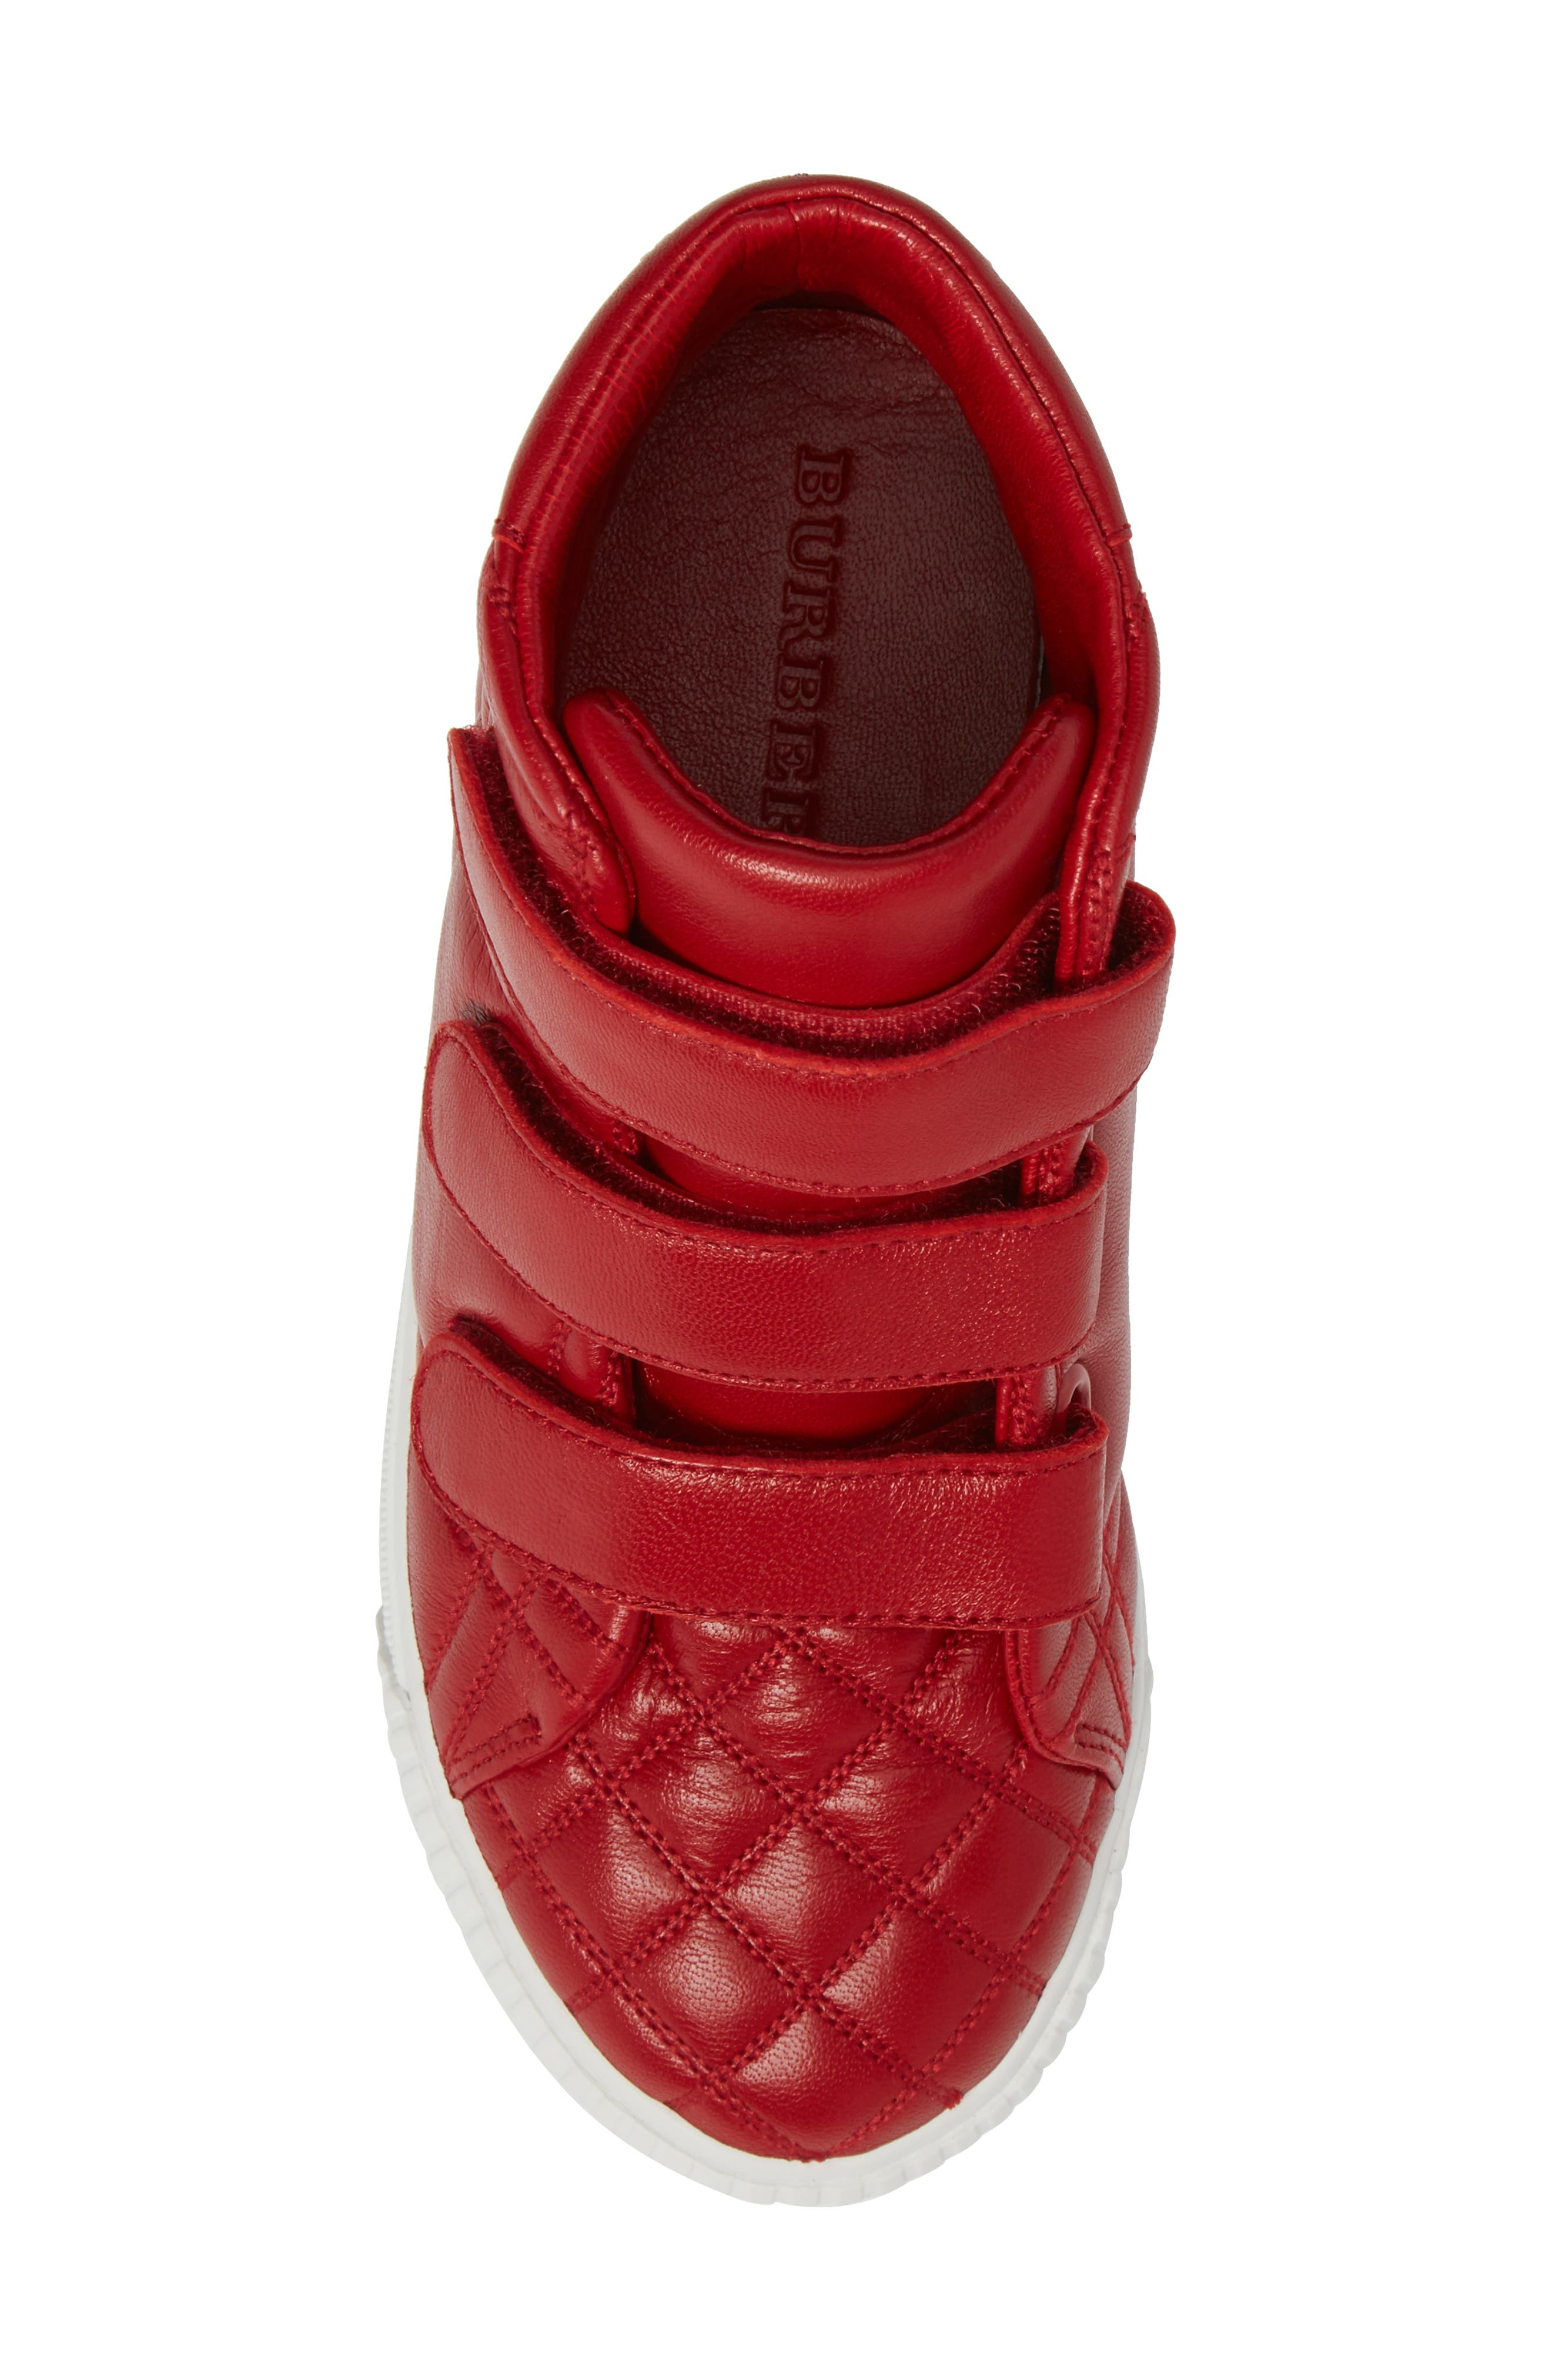 Sturrock Quilted High Top Sneaker,                             Alternate thumbnail 10, color,